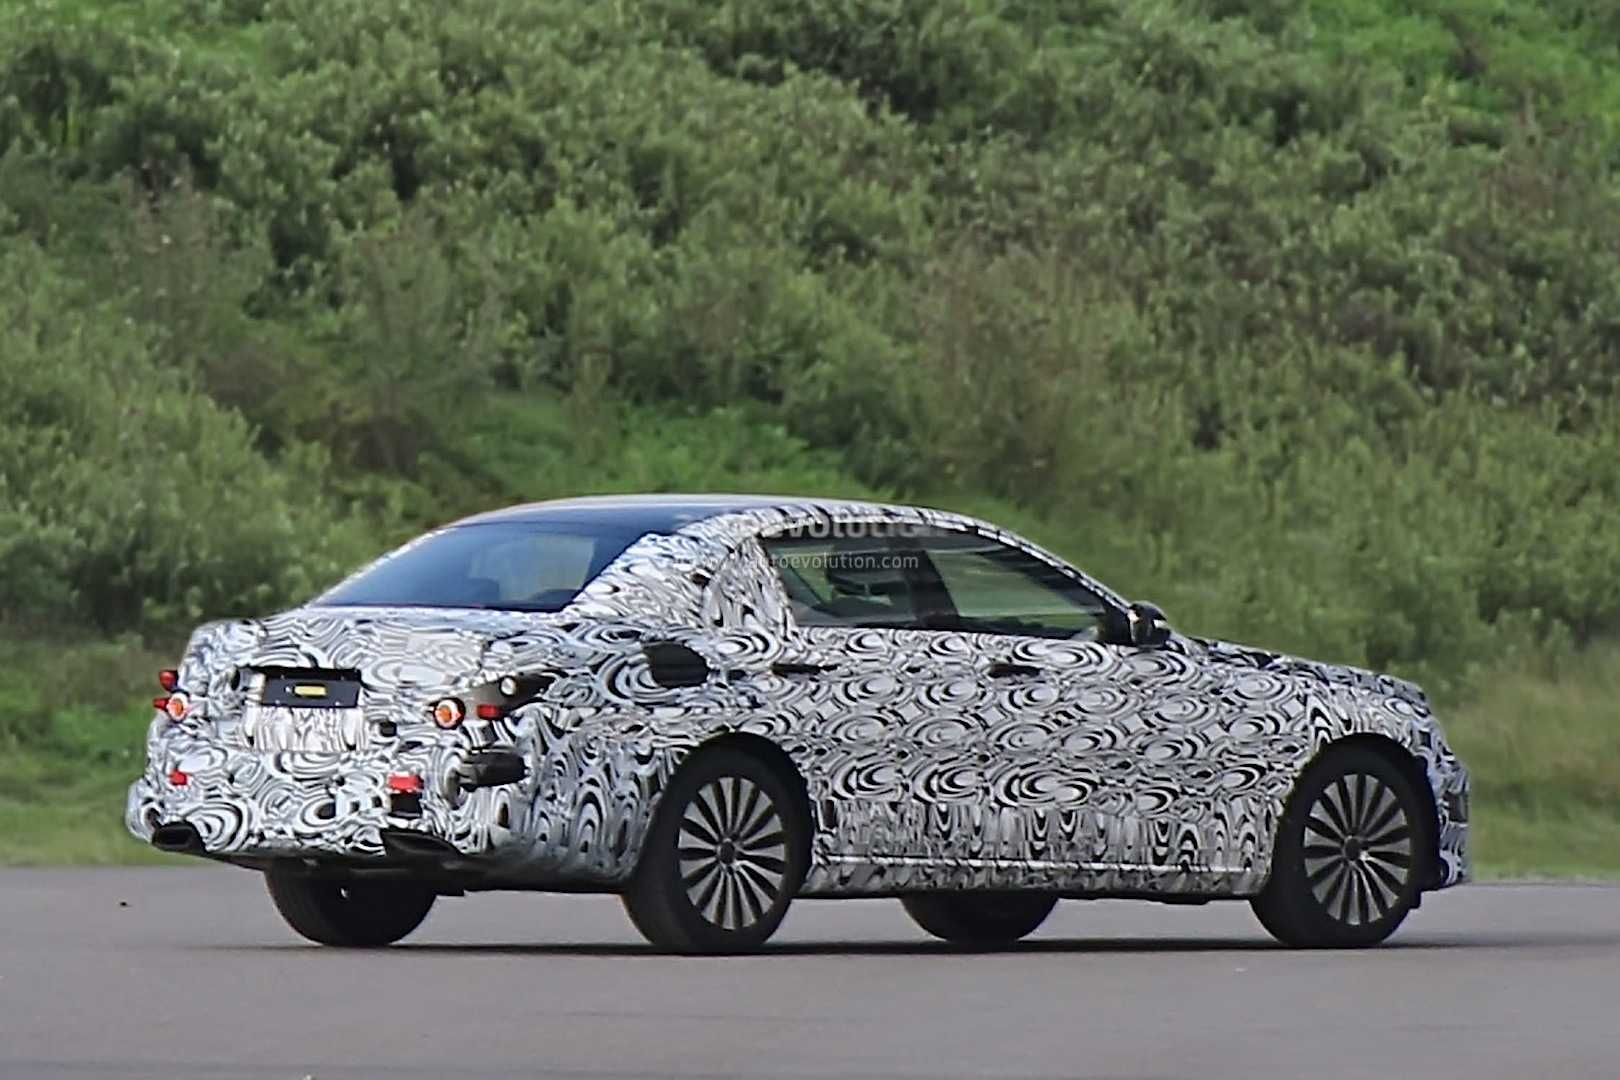 2017 Mercedes Benz E-Class Creates Waves Among Enthusiasts: Camouflaged Vehicle Caught by Spy Camera?